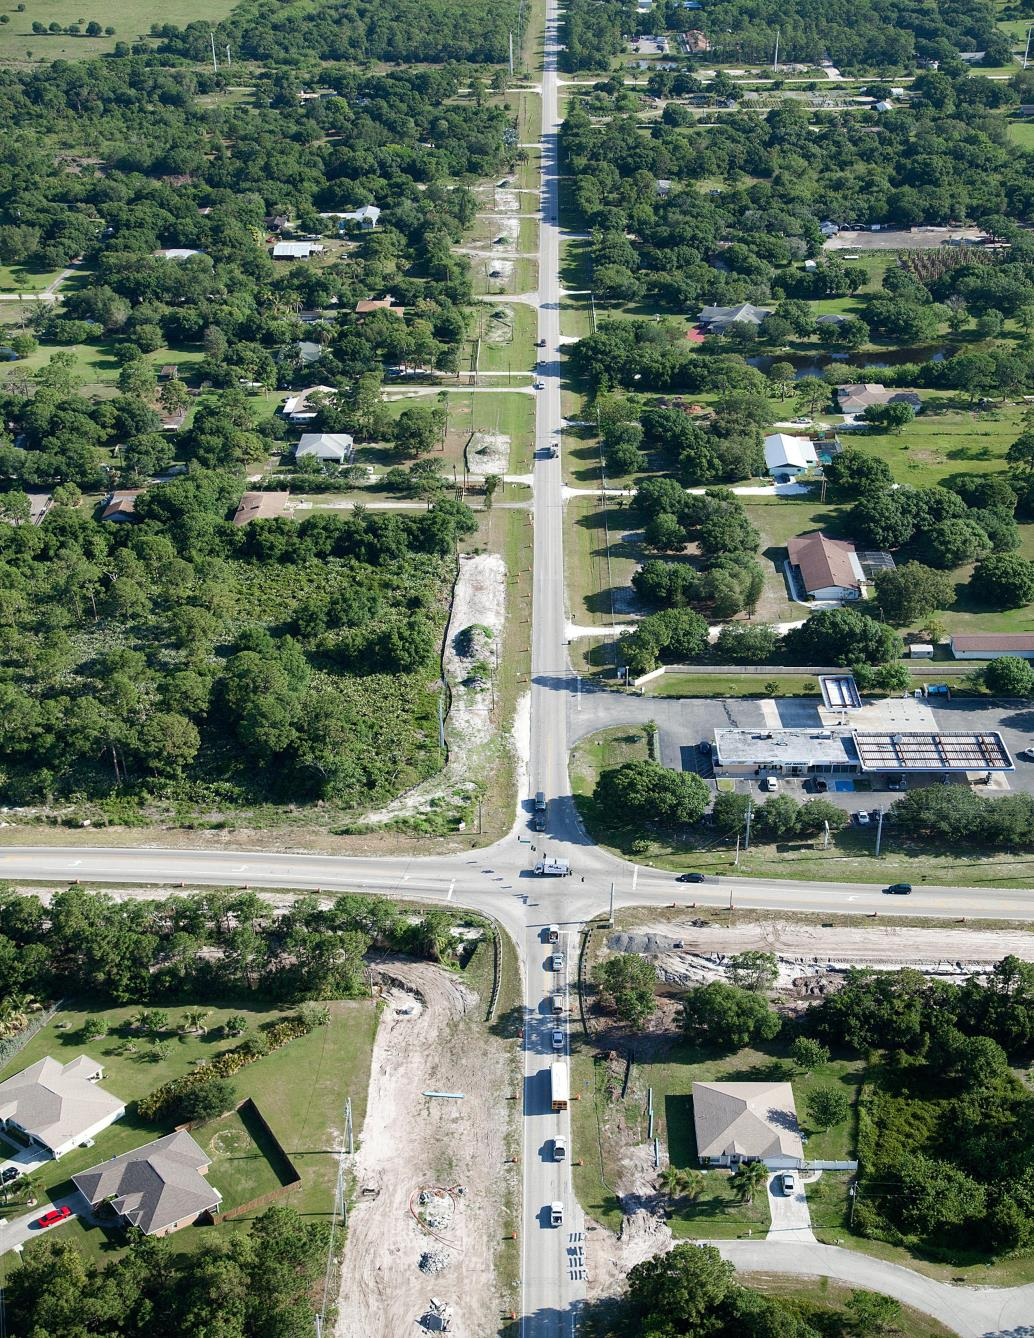 Aerials_012_5-18-15_Selvitz_Rd_looking_north_from_122_50_to_147_00